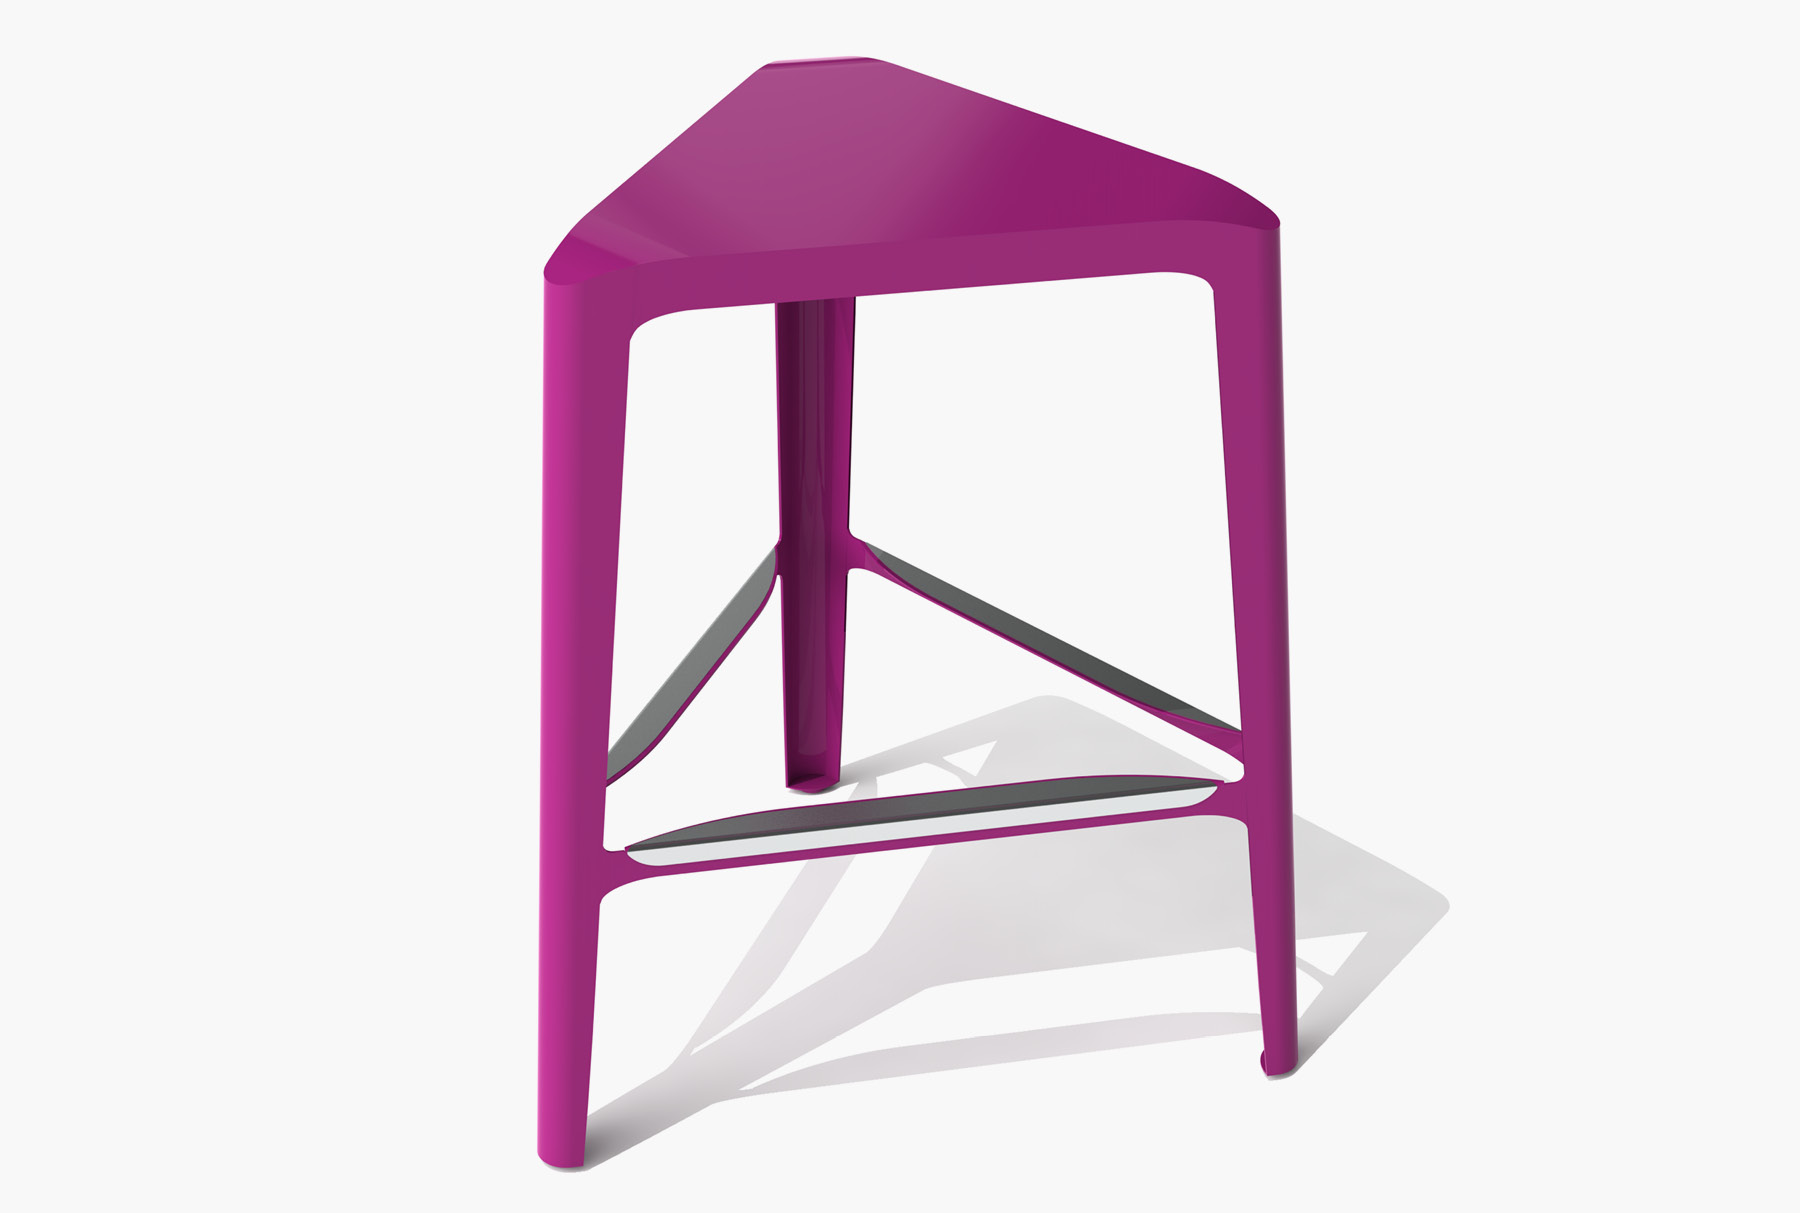 Arktura Clic Mid Stool in Wild Orchid